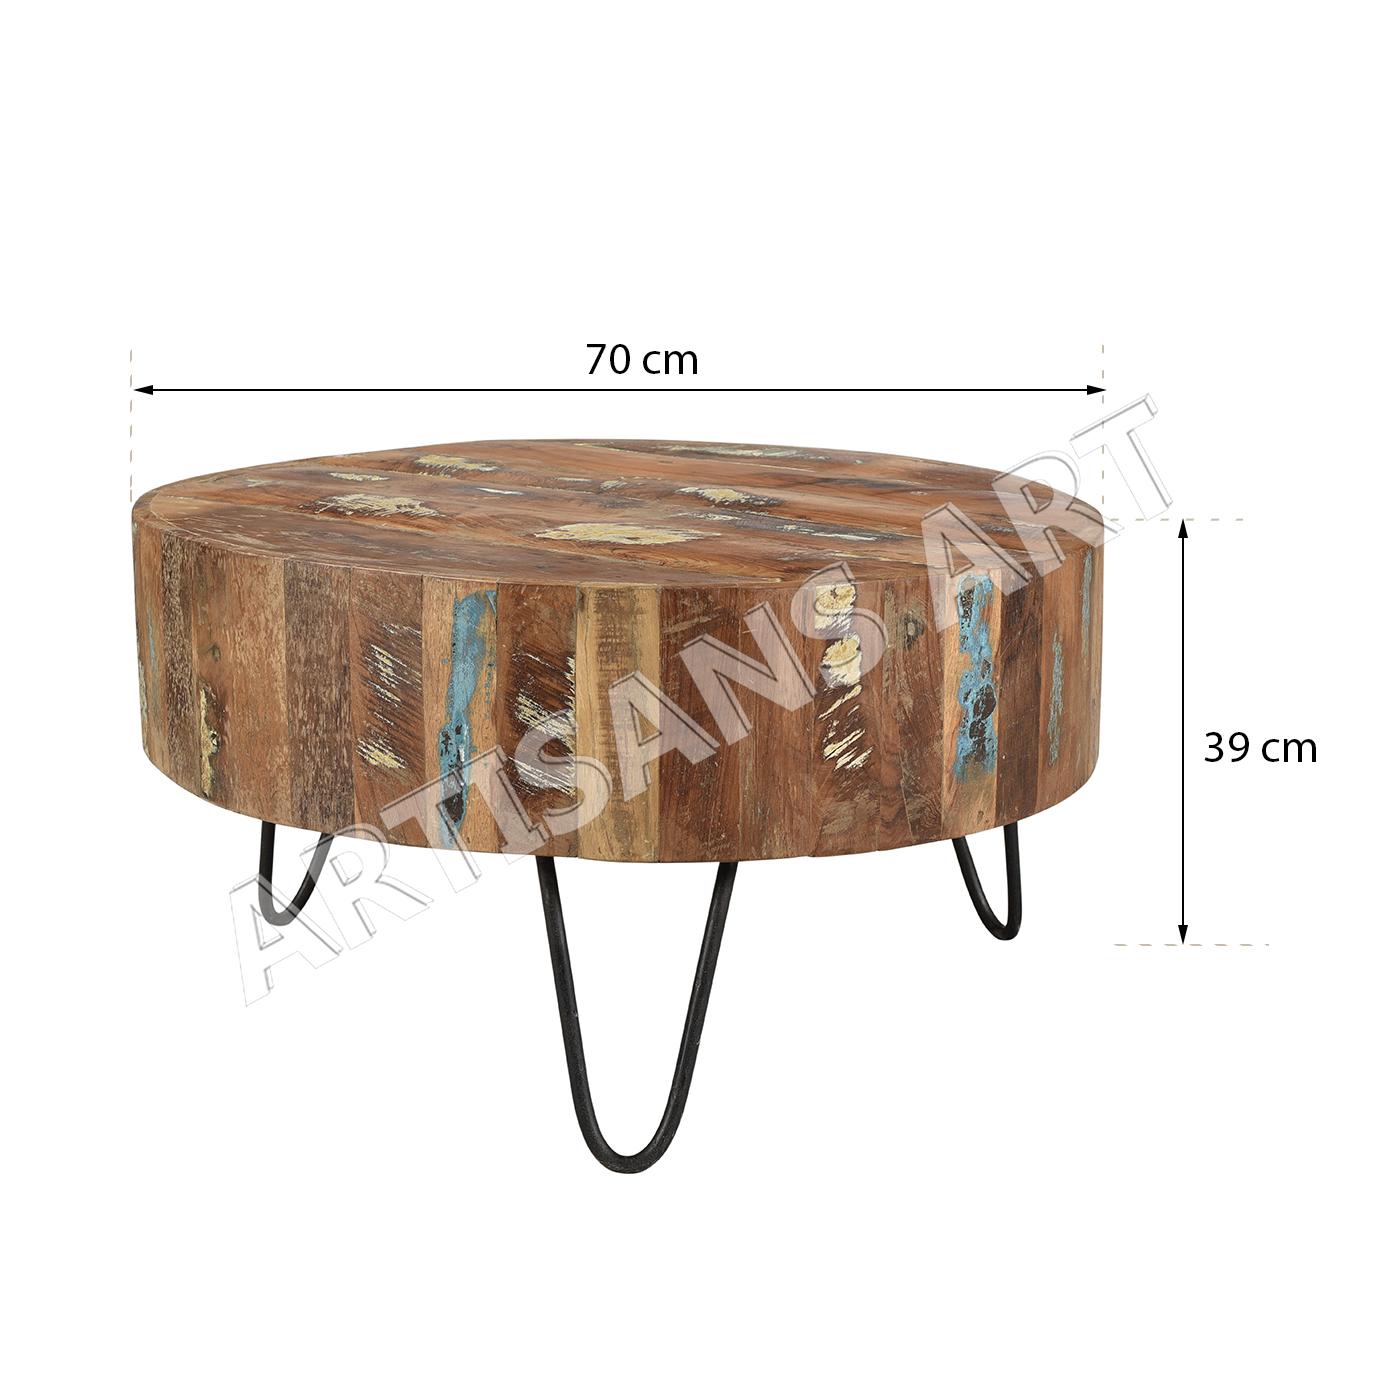 Vintage Reclaimed Wood Round Coffee Tableparquet Round Coffee Table